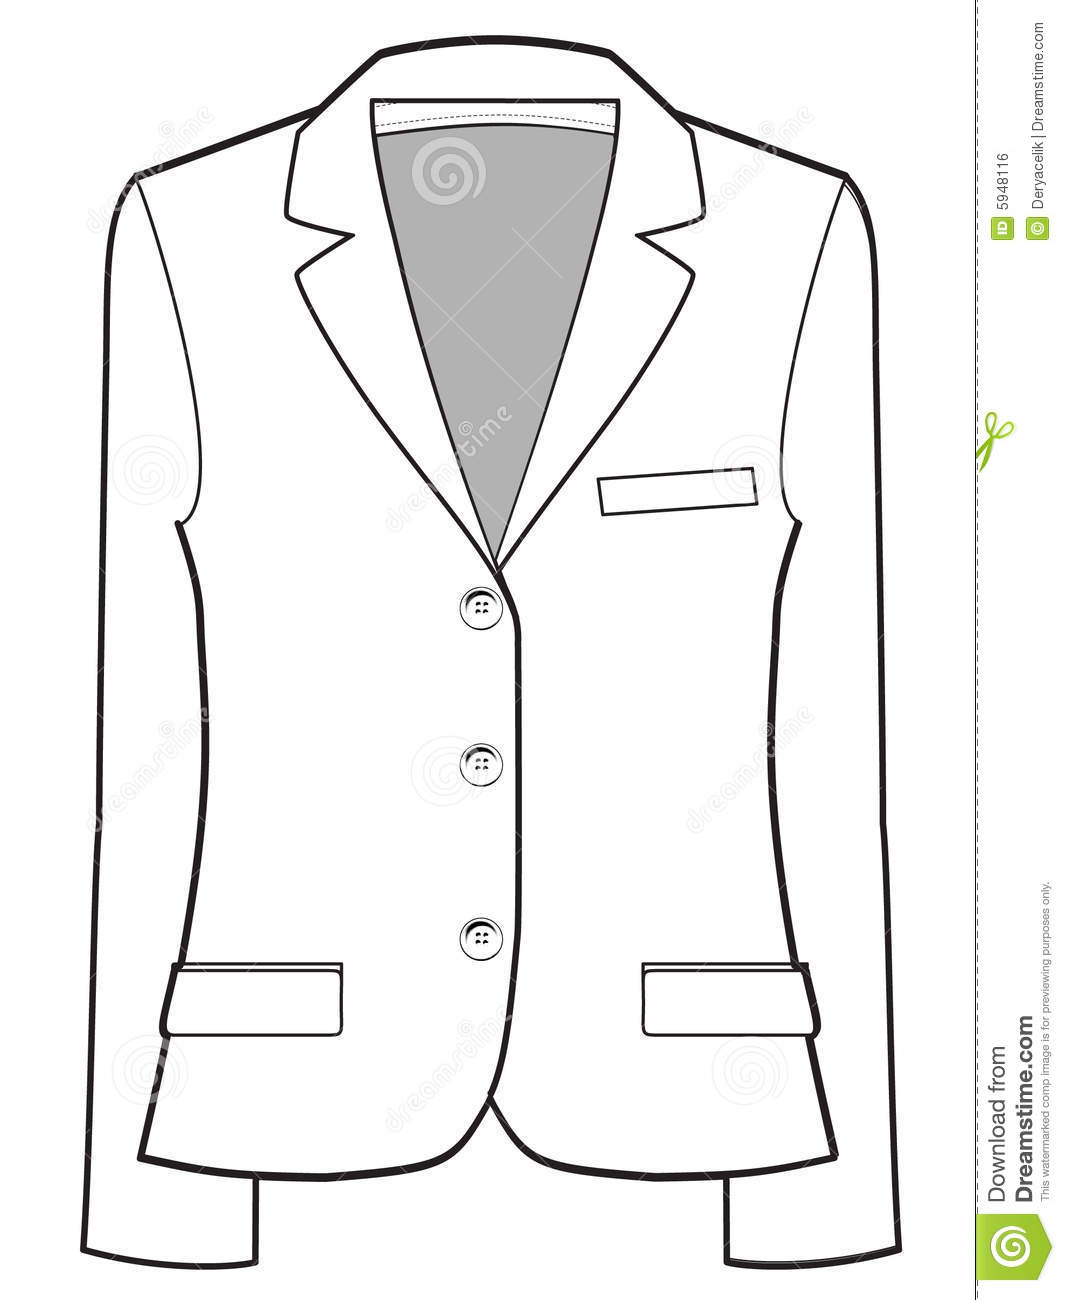 Jacket Vector Illustration Stock Vector Illustration Of